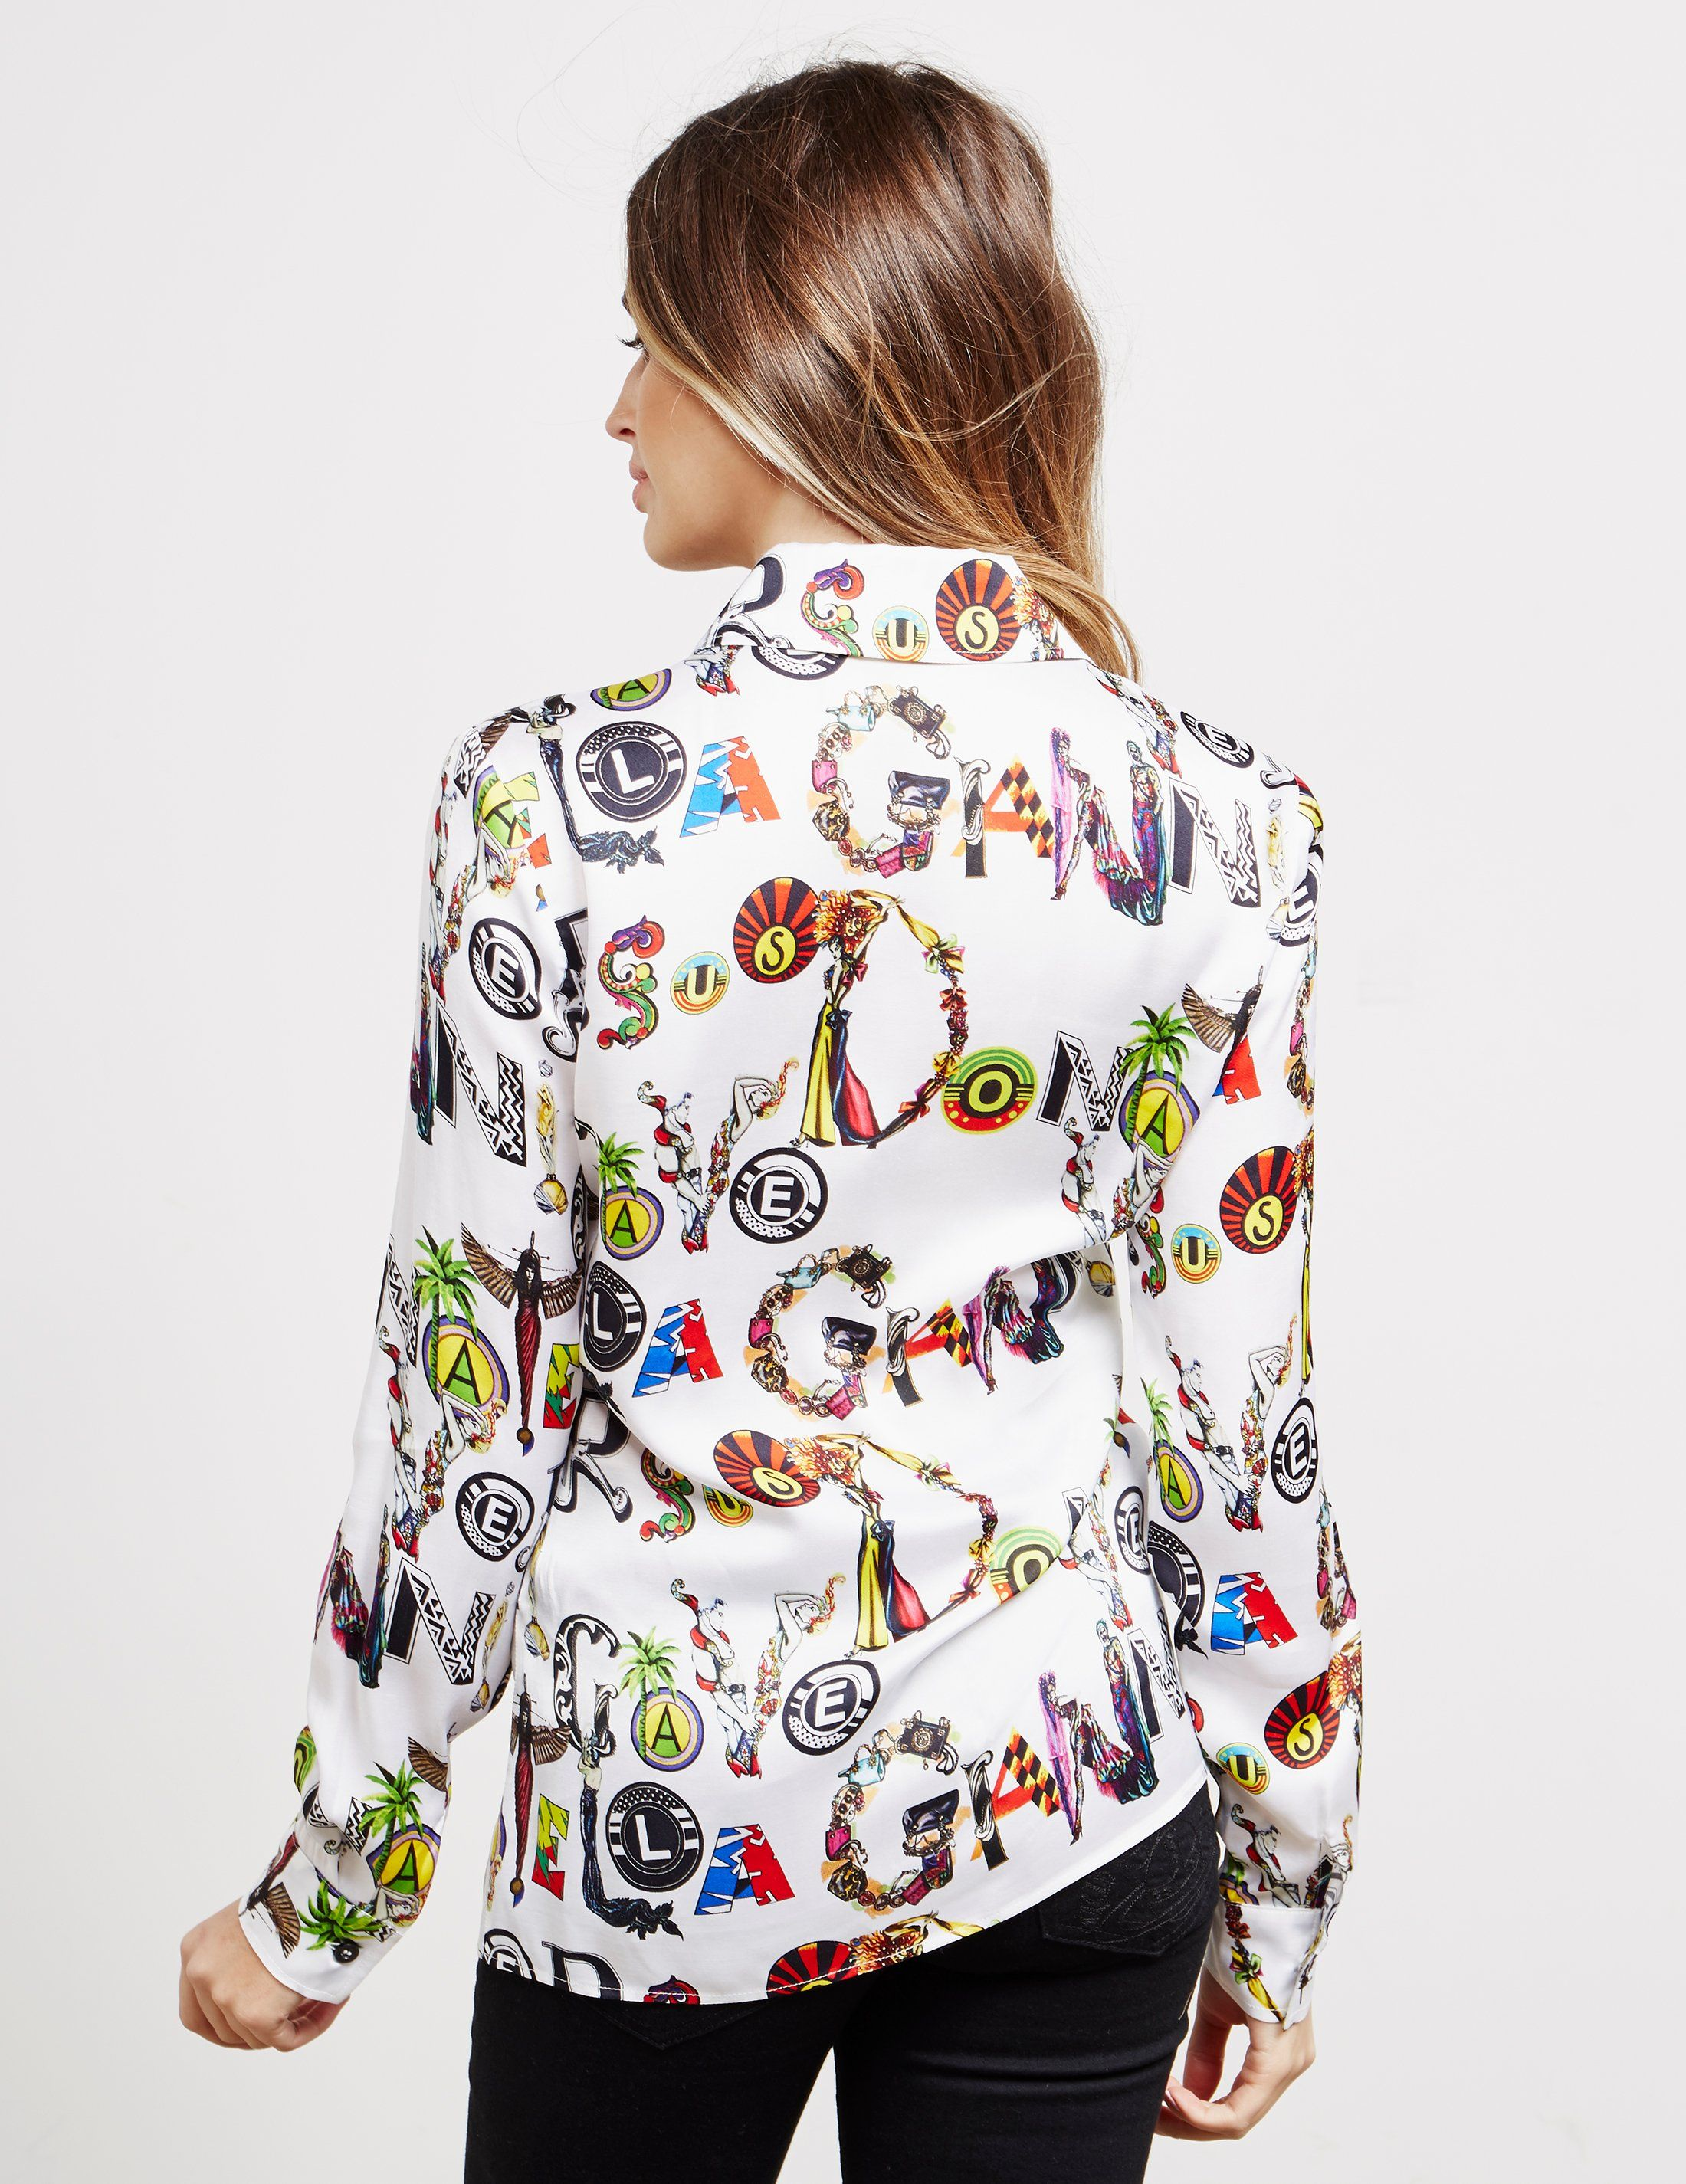 Versus Versace Graphic Long Sleeve Shirt - Online Exclusive